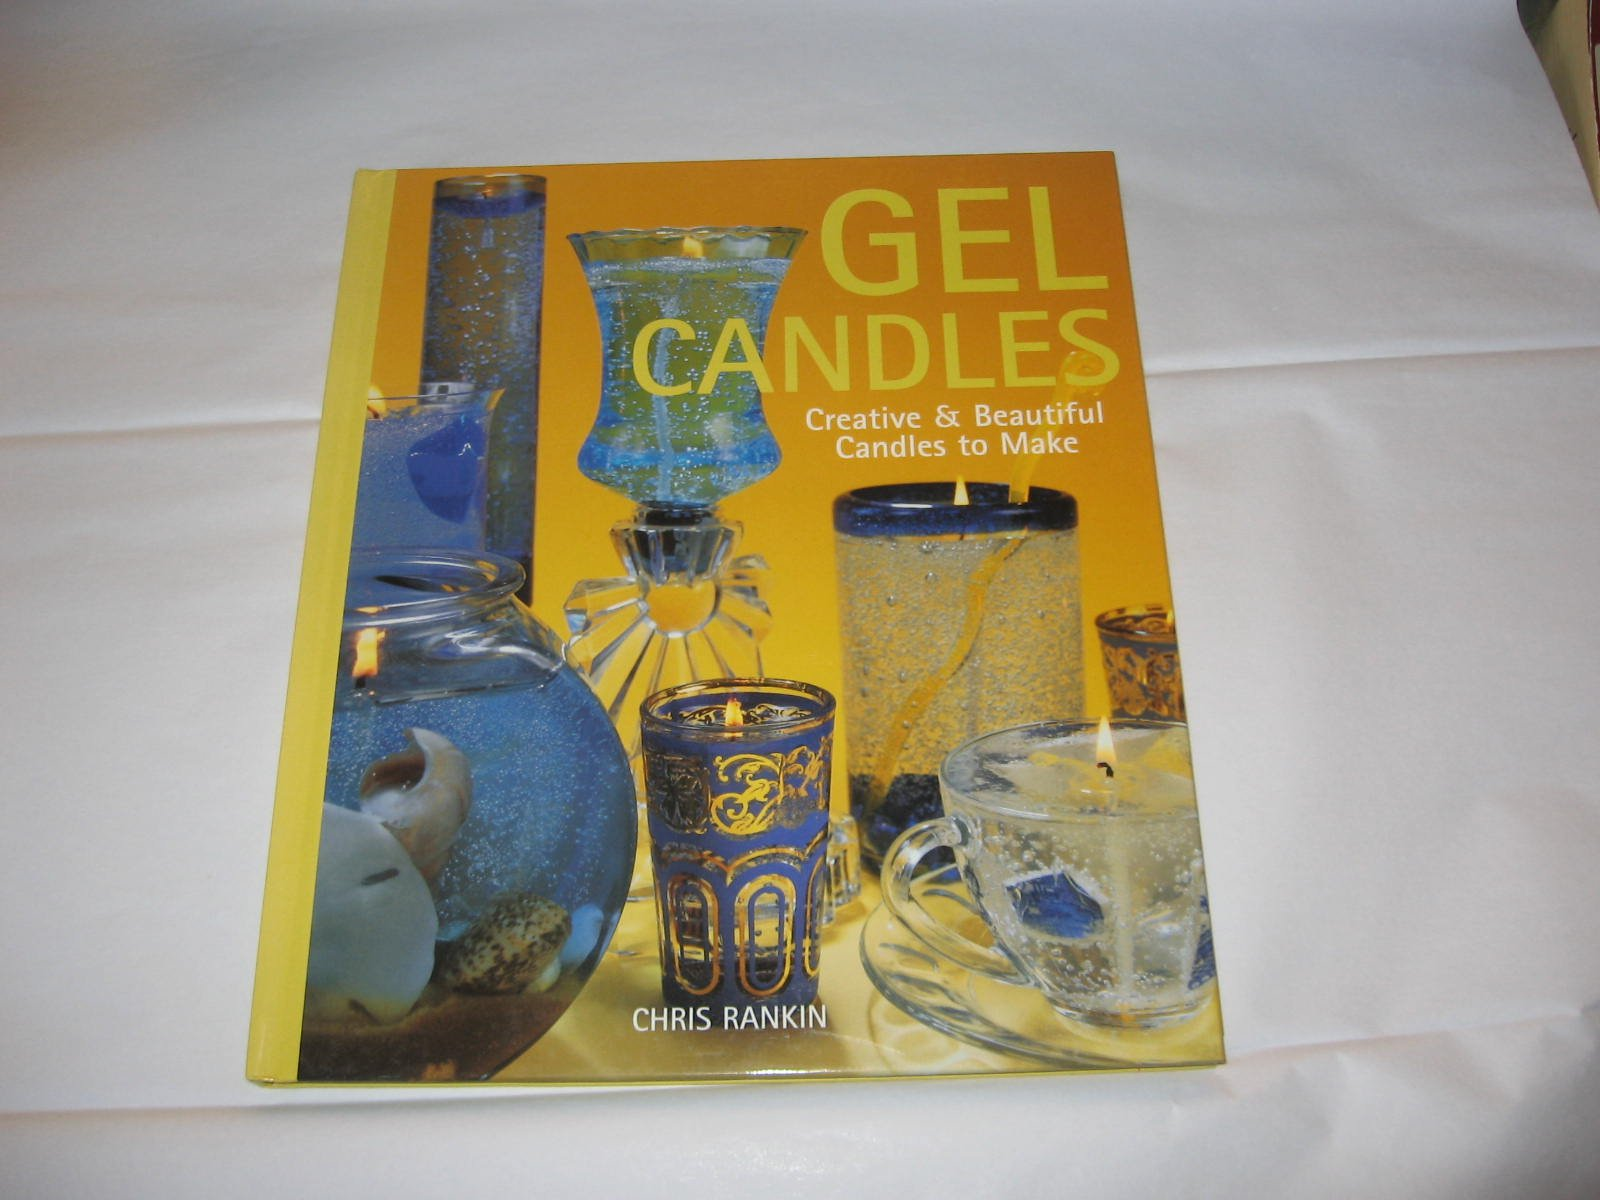 Gel Candles - Creative & Beautiful Candles To Make